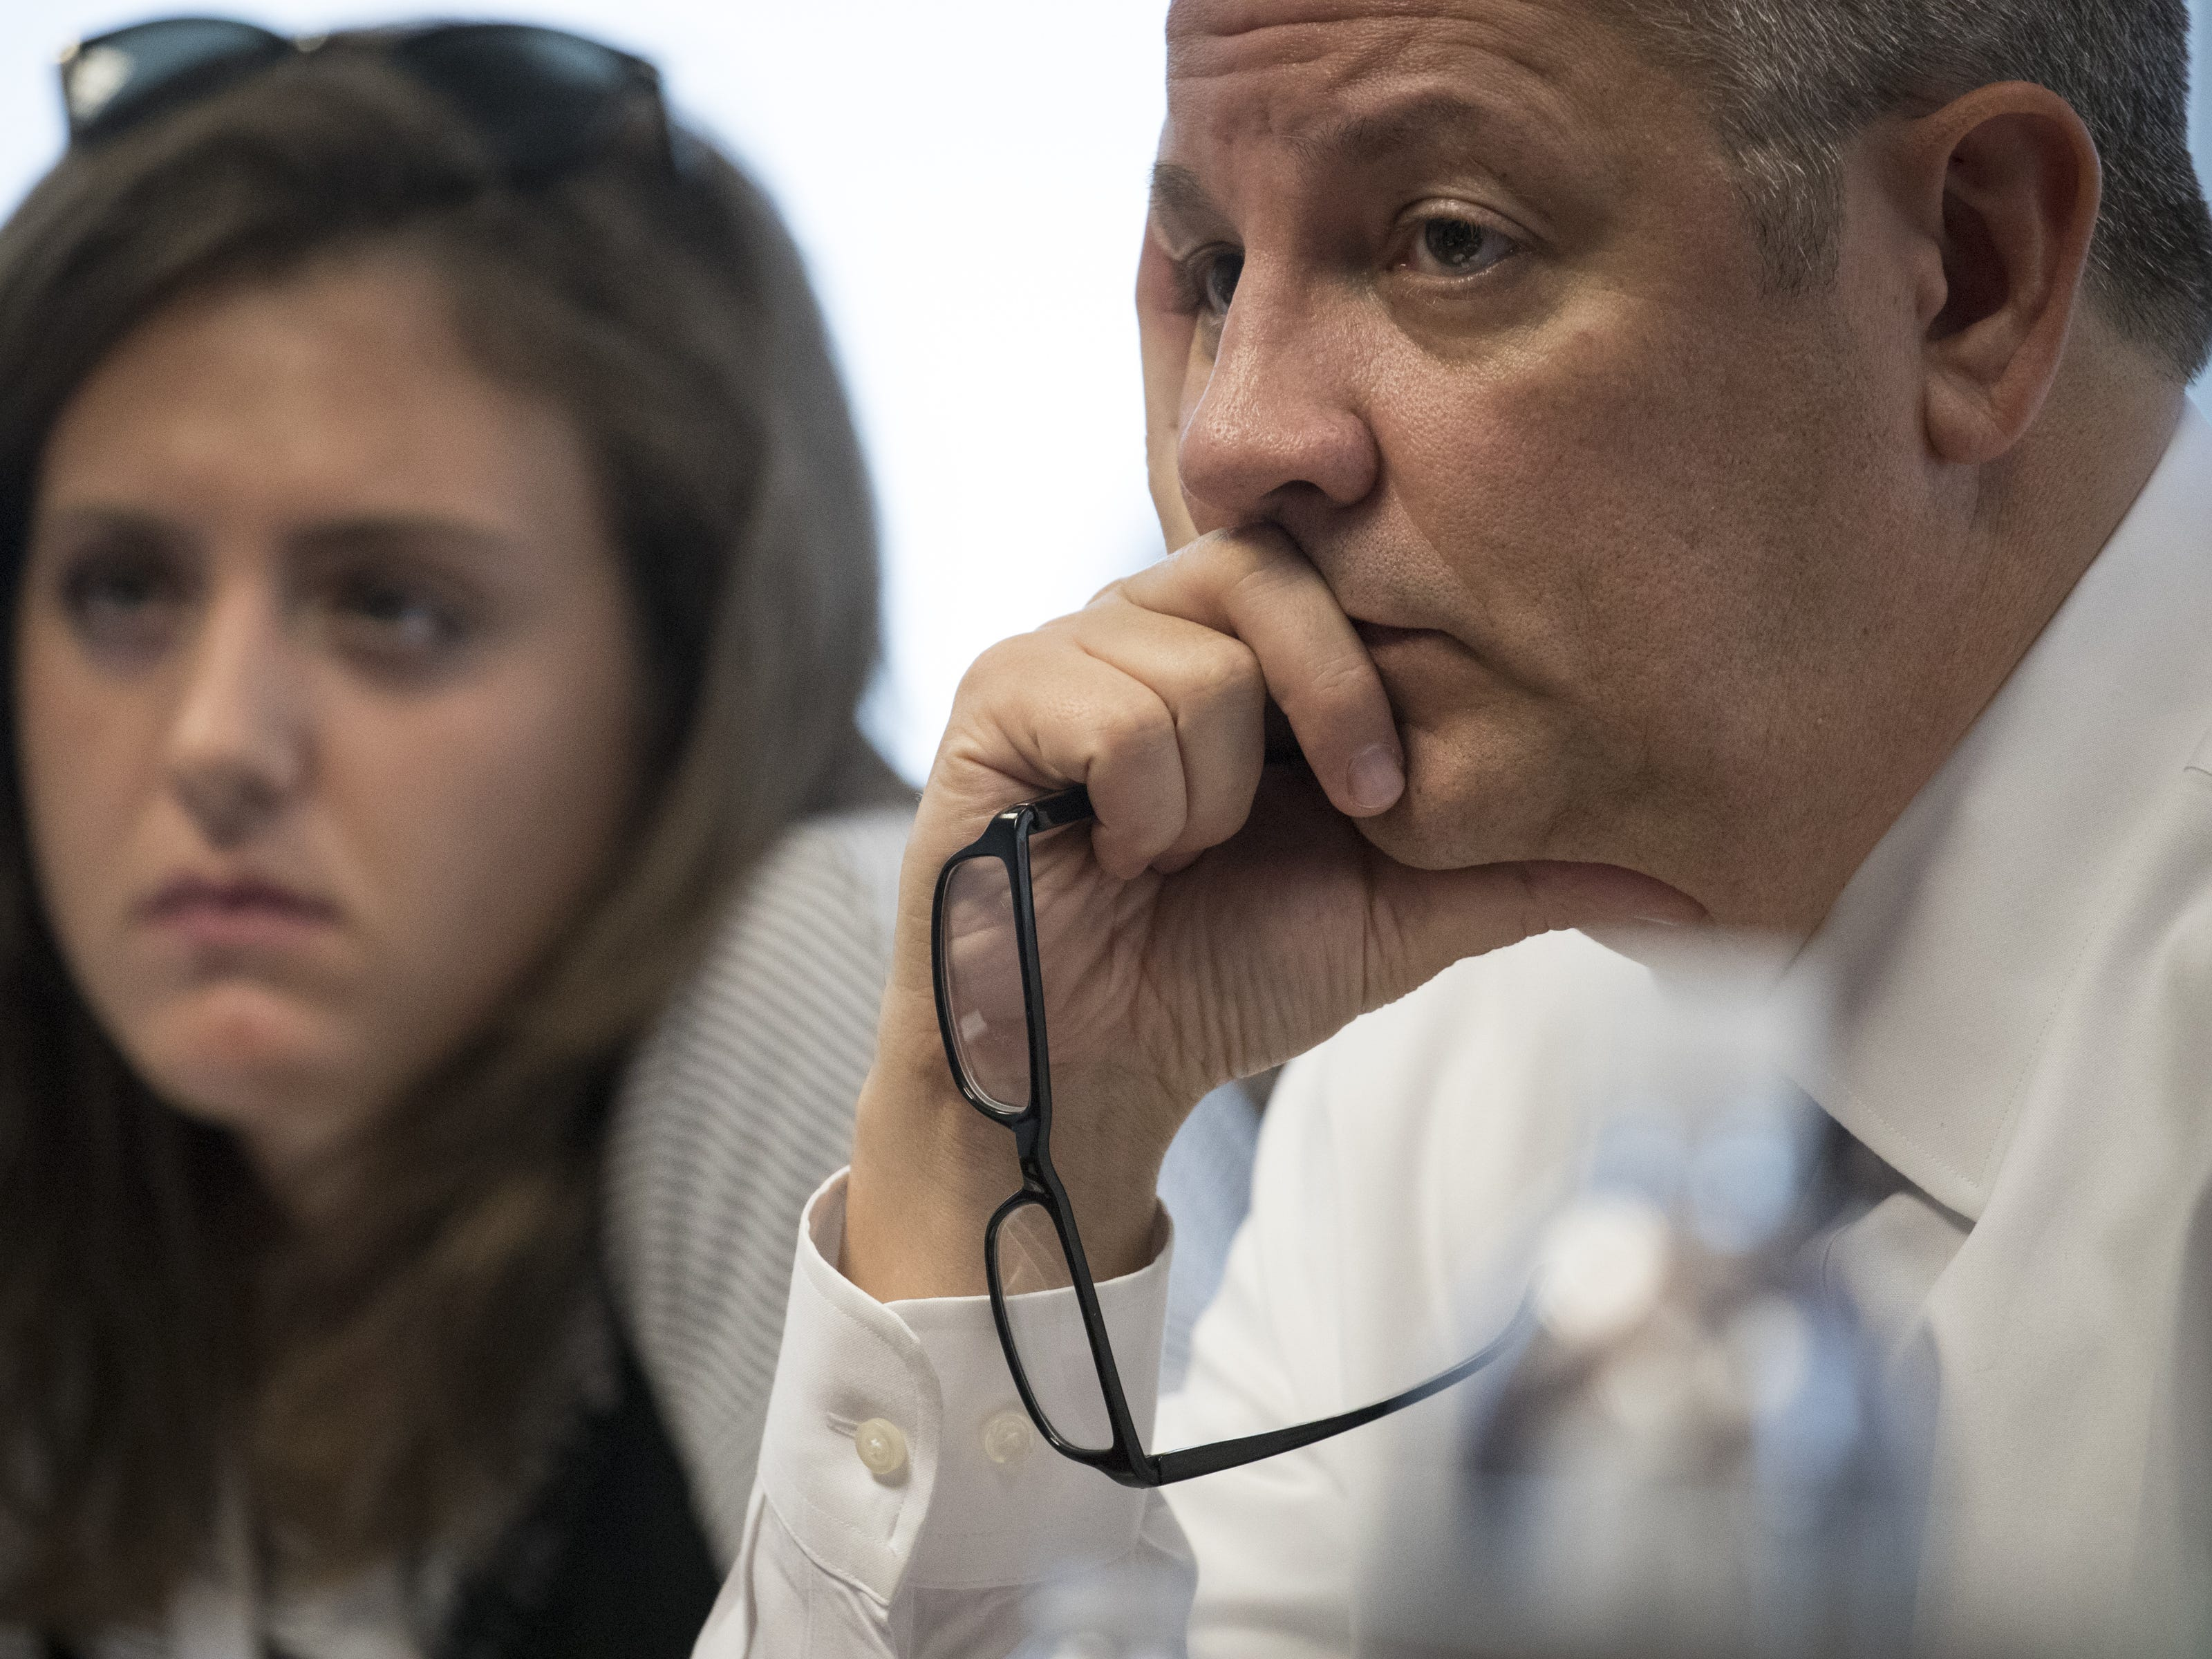 Ron Hansen (right) listens to Jesse Jackson during an interview in the editorial board room on Aug. 8, 2018, at The Arizona Republic.